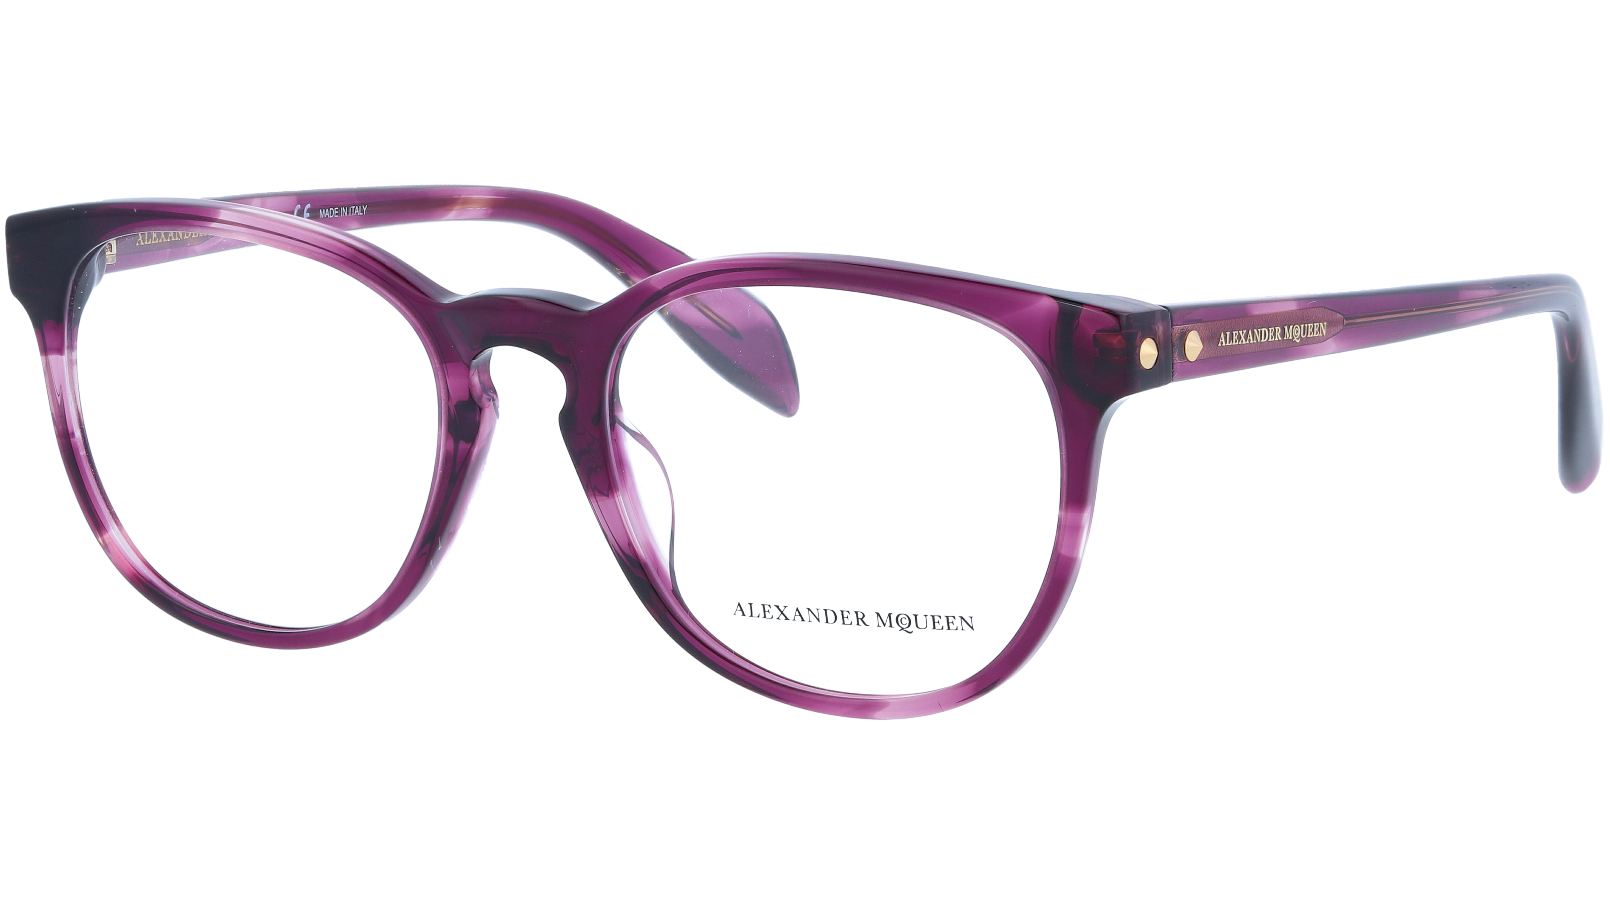 ALEXANDER MCQUEEN AM0100O 003 51 AVANA Glasses